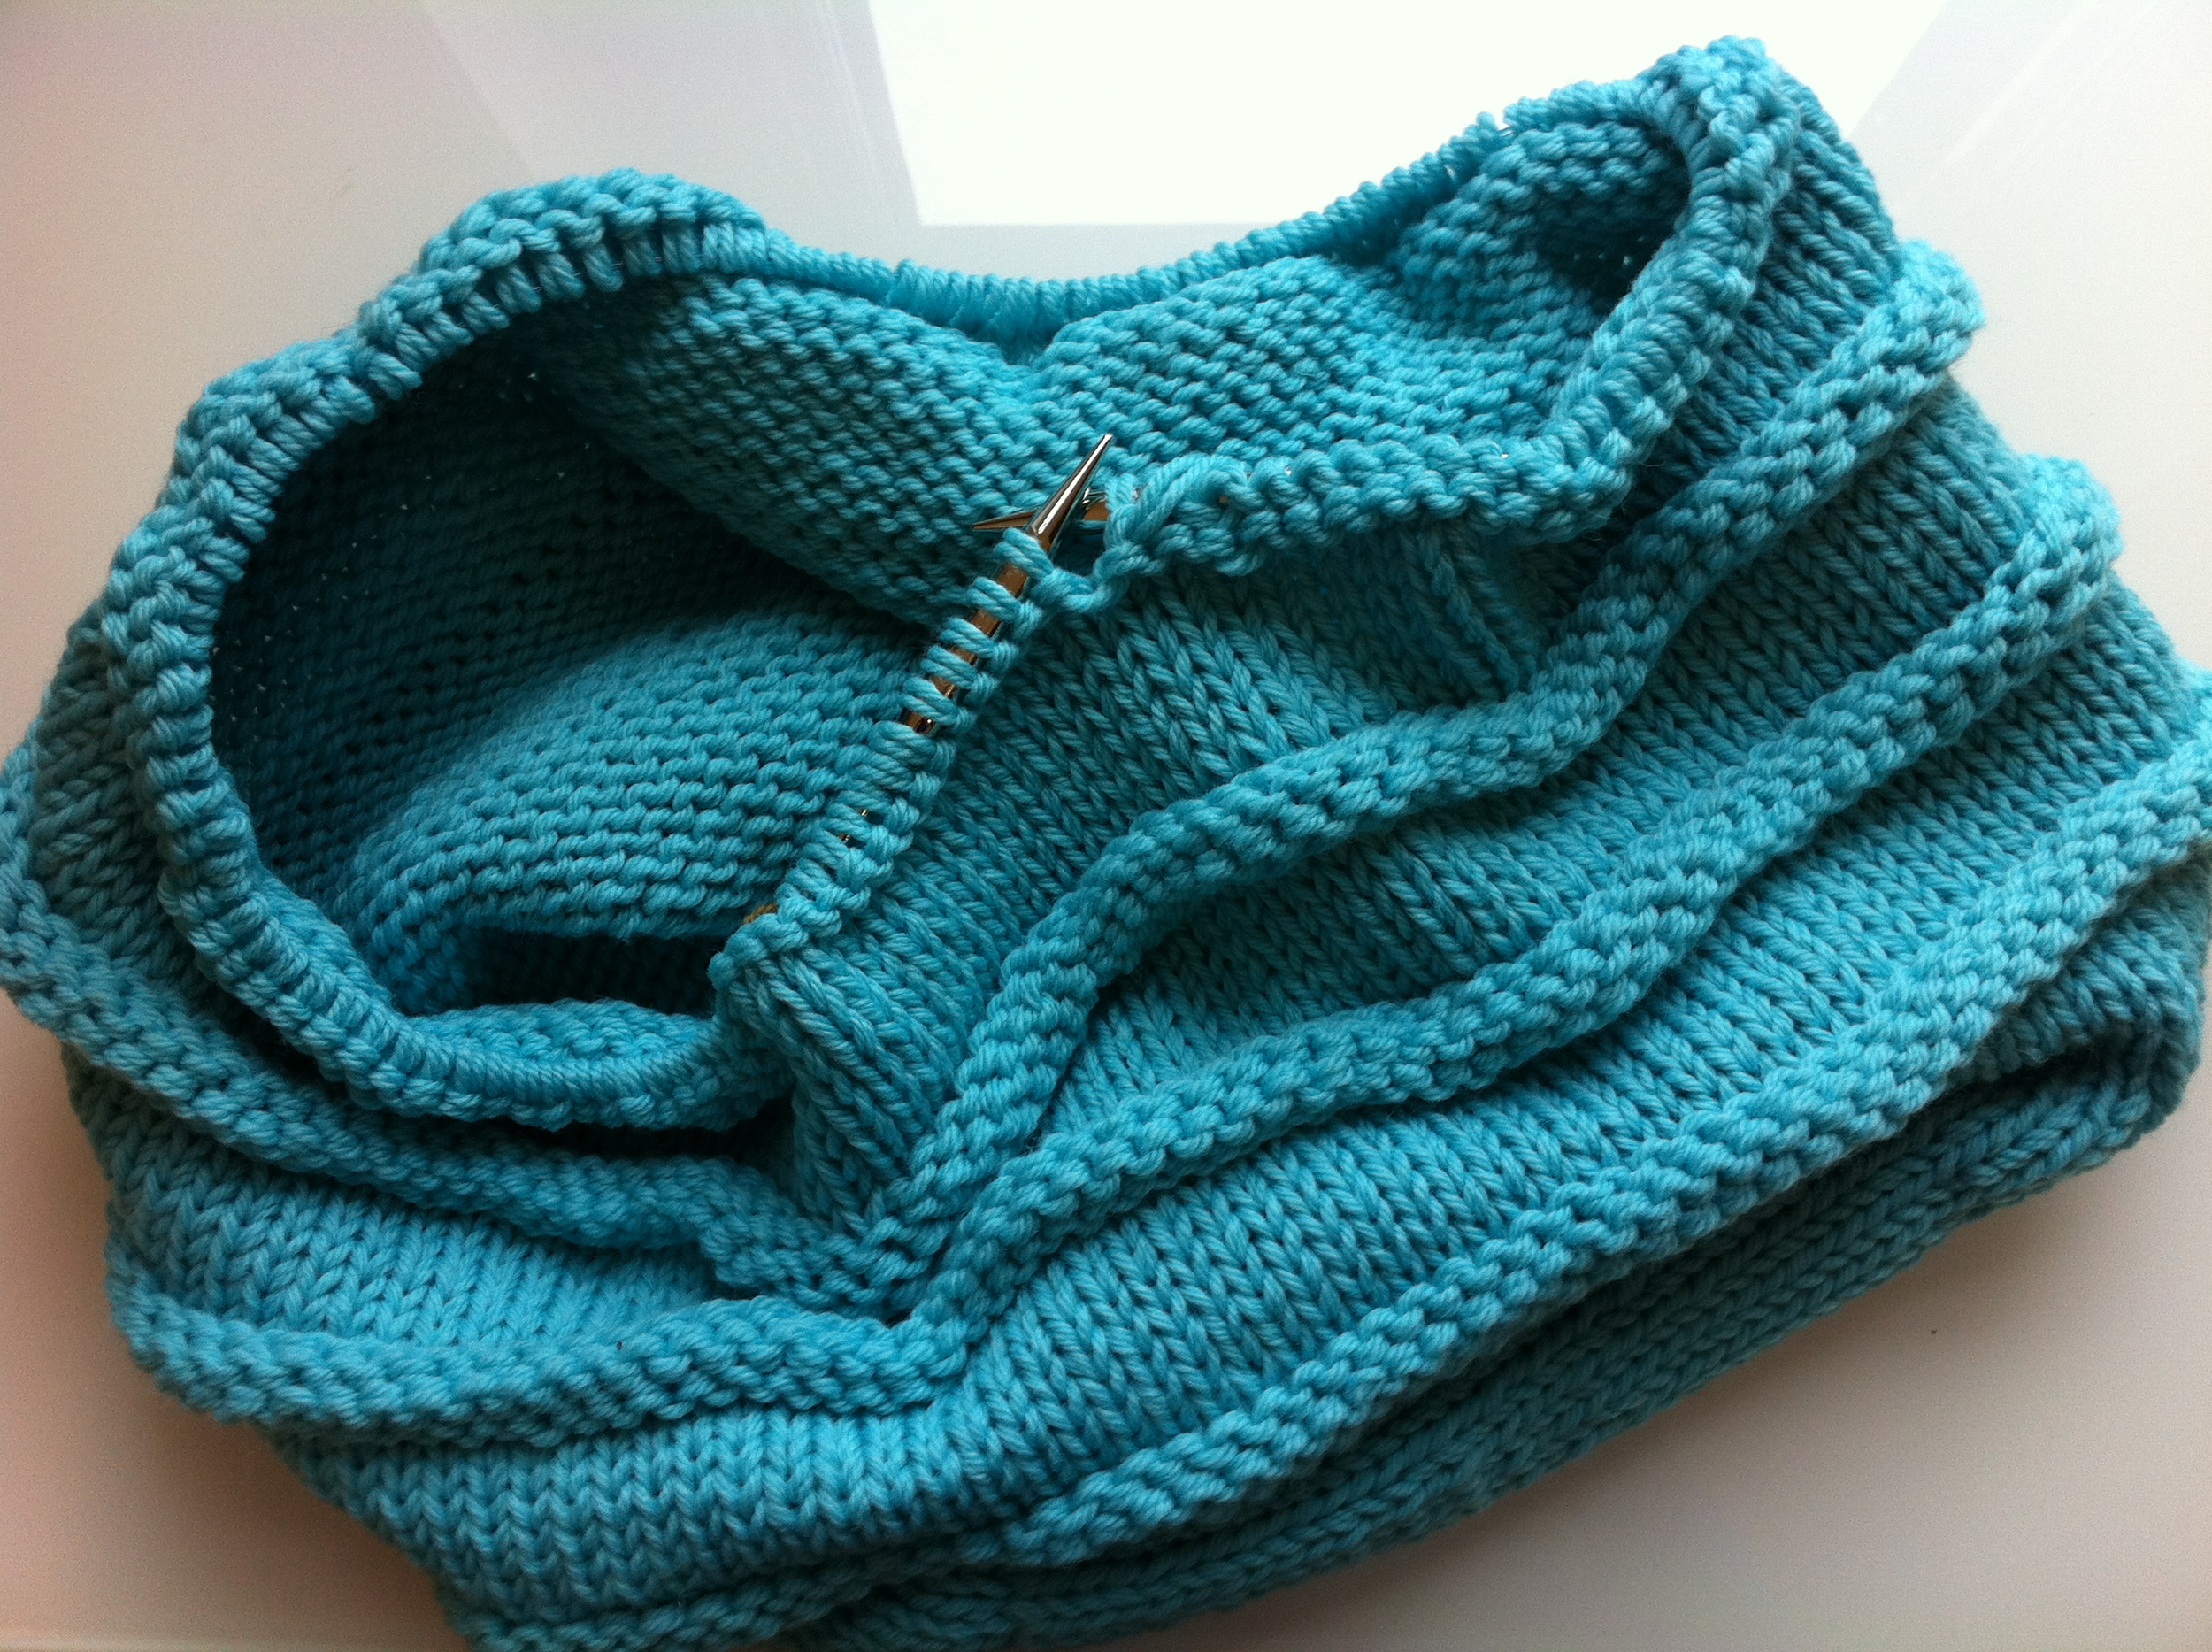 WIP:  Bedouin Bag in Three Sizes  by Nora J. Bellows. I'm doing the smallest size.